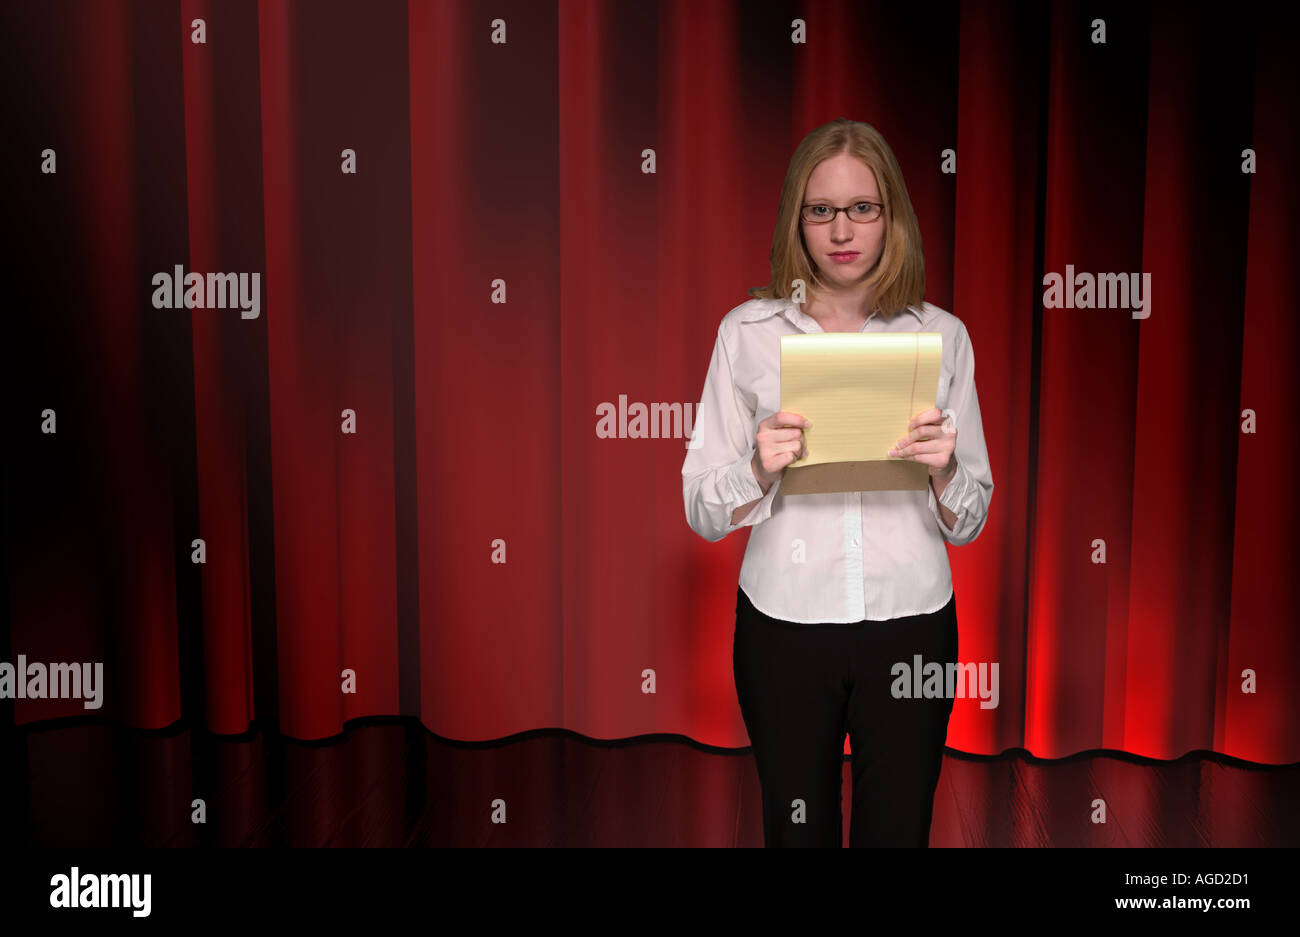 Caucasian Teen Girl Gives Speech on Stage USA Stock Photo